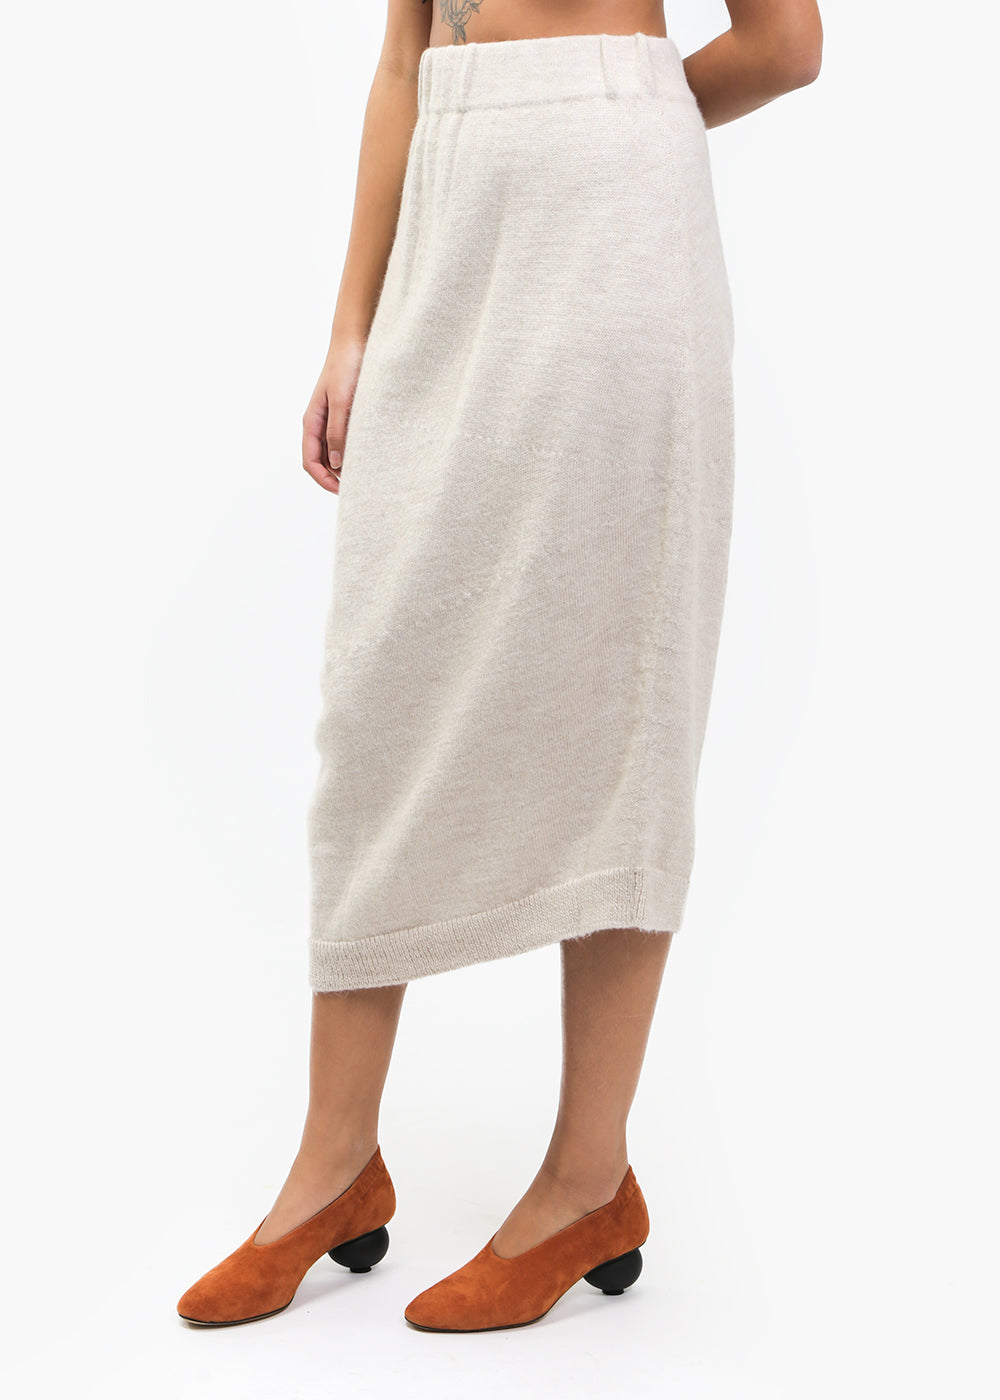 Lauren Manoogian Hessian Bend Skirt — New Classics Studios